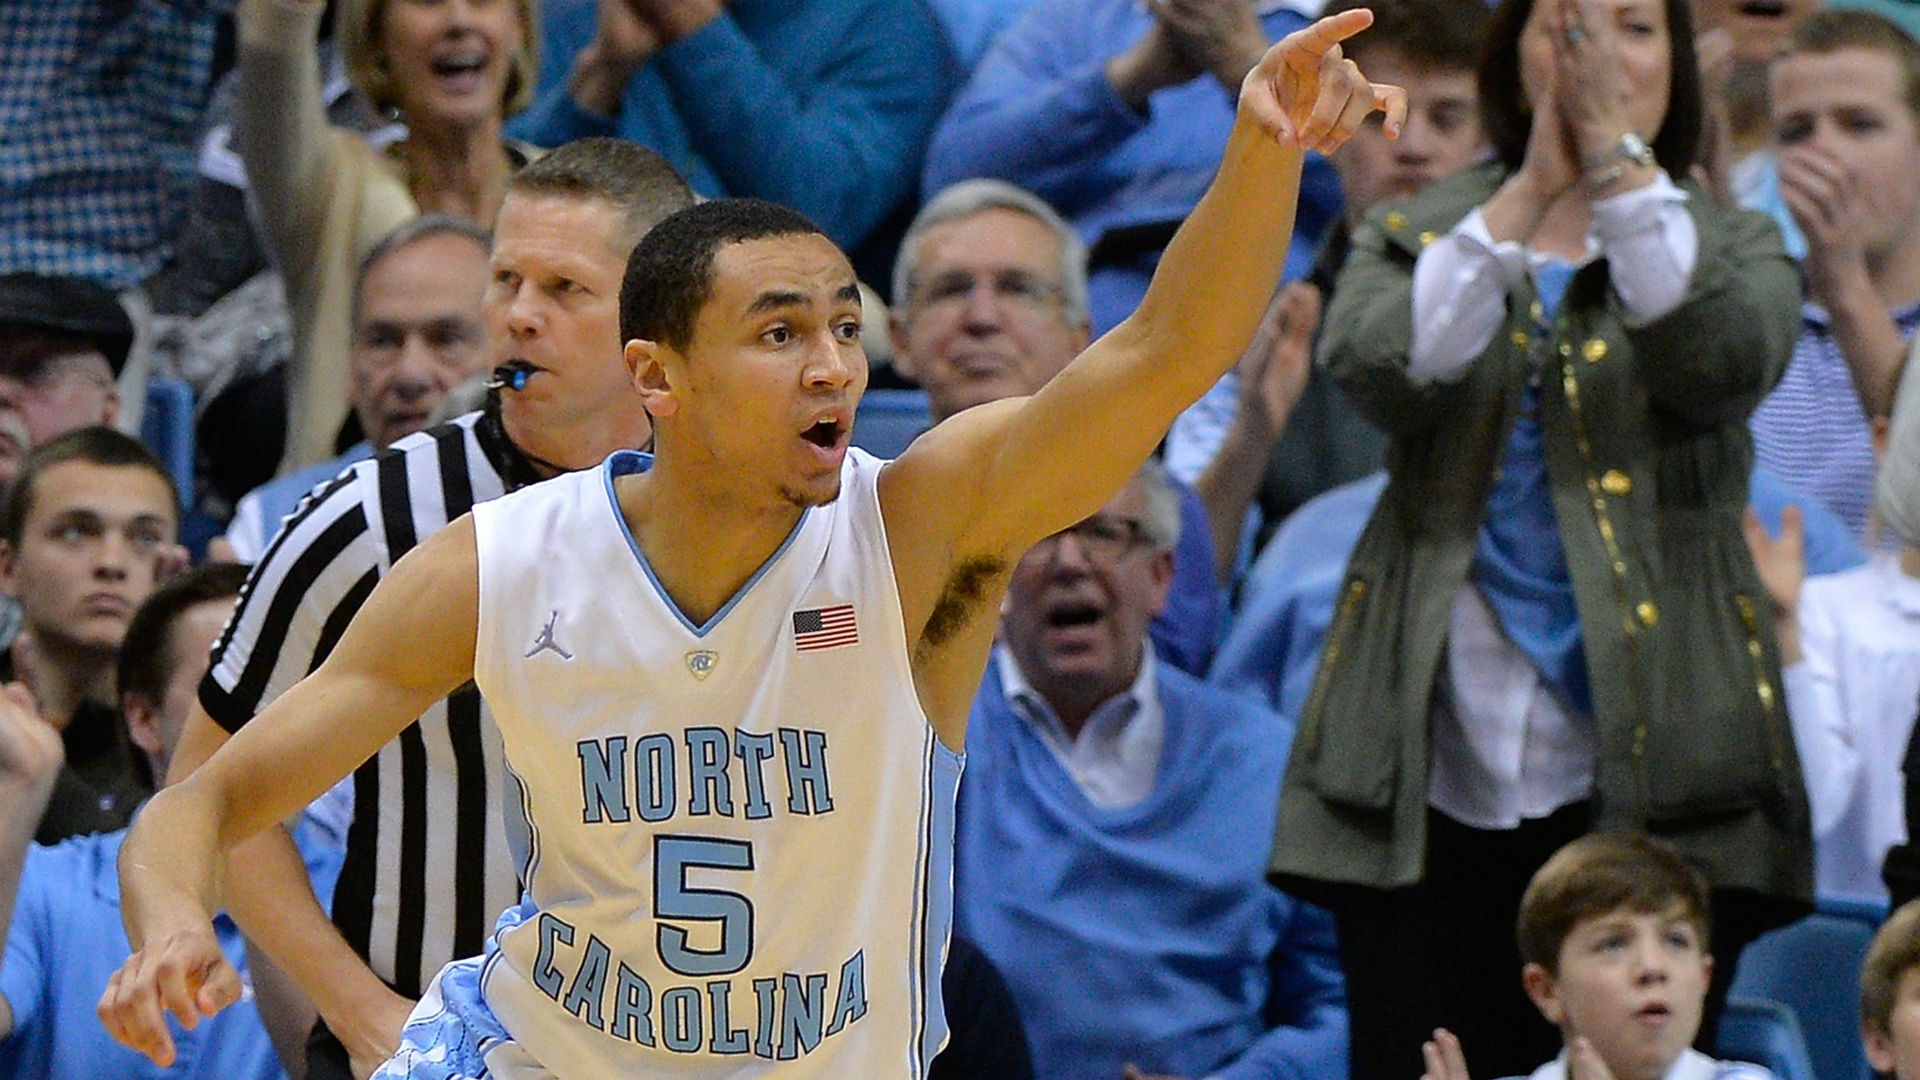 College basketball lines and pick - Heels look to avenge loss to Orange